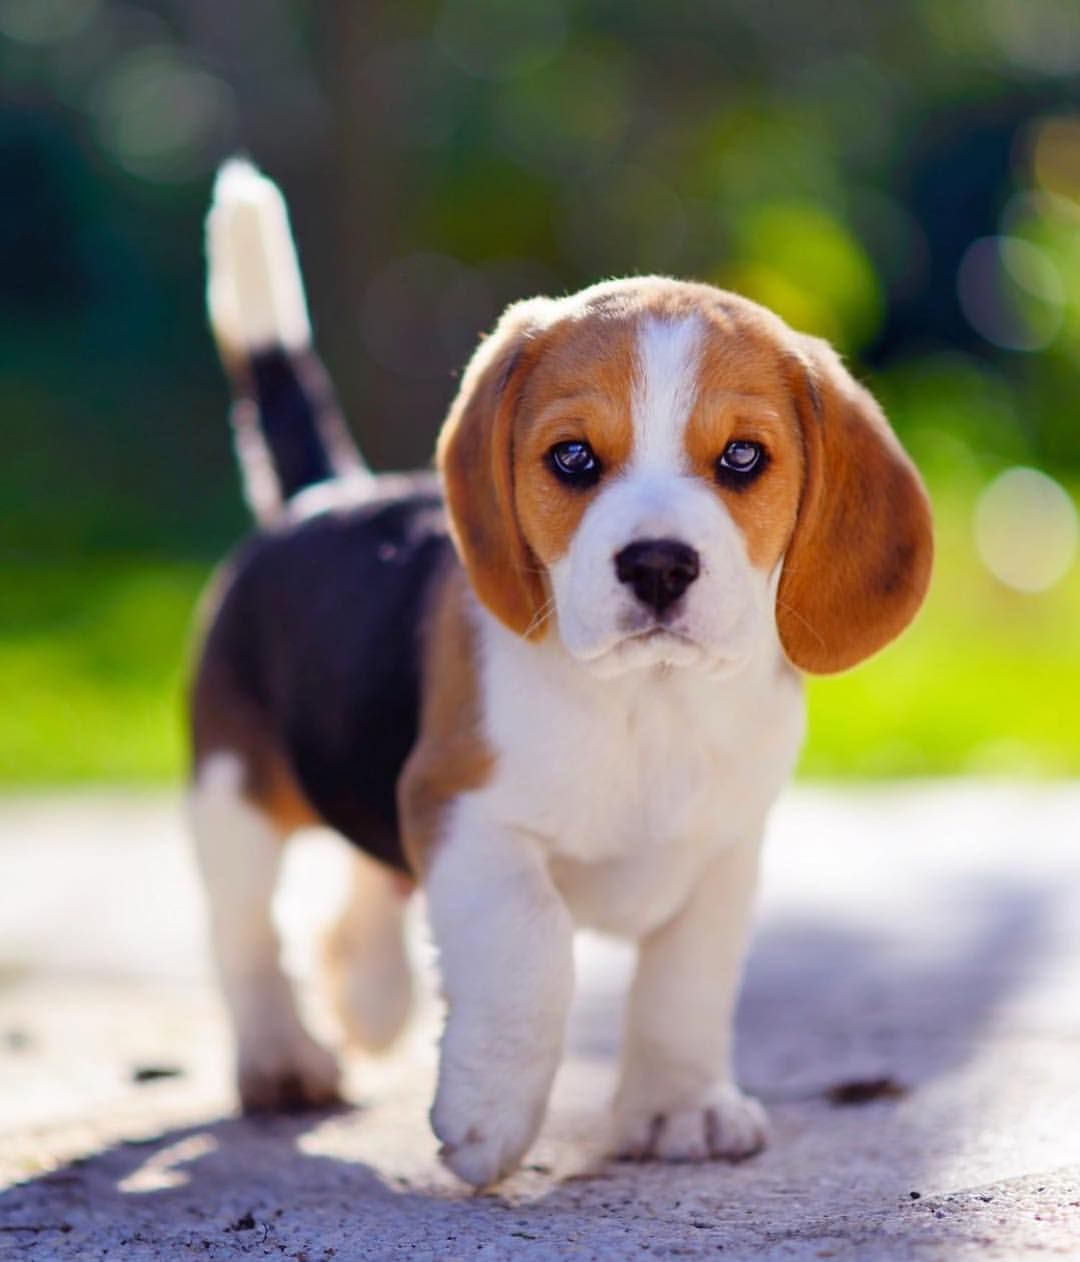 My Pet Cute Beagles Puppies Pet Dogs